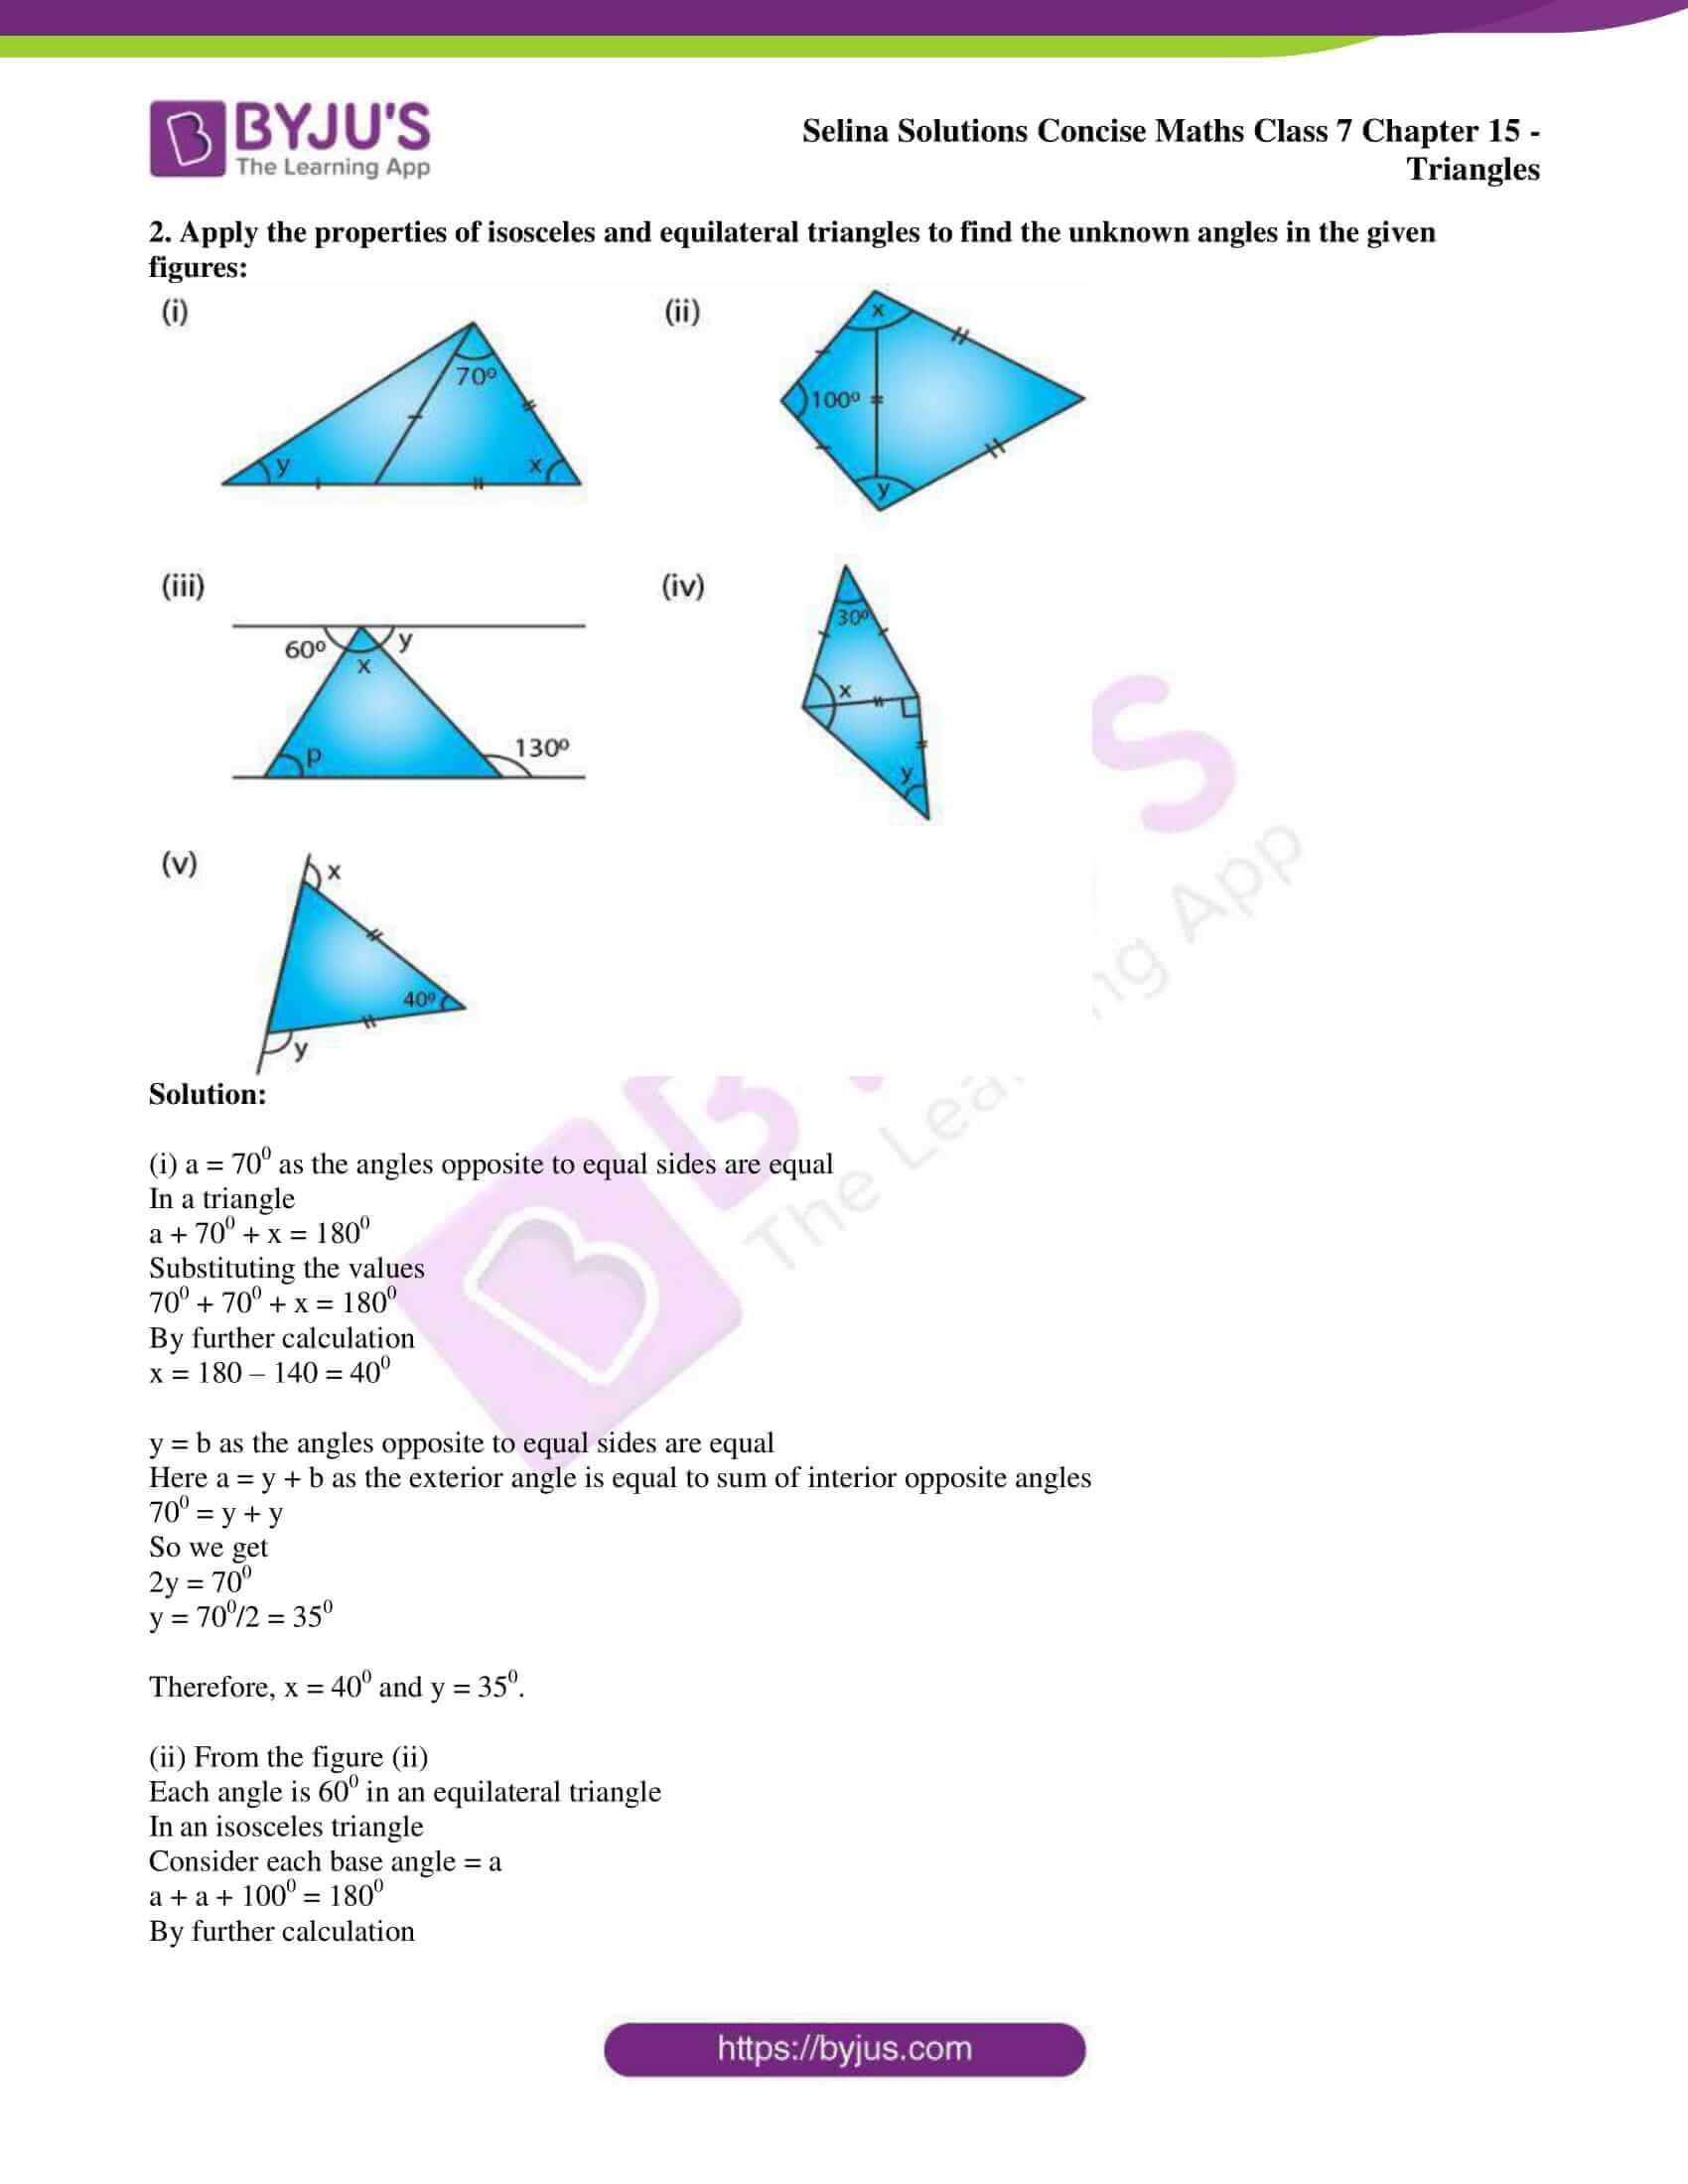 selina sol concise maths class 7 chapter 15 ex b 03